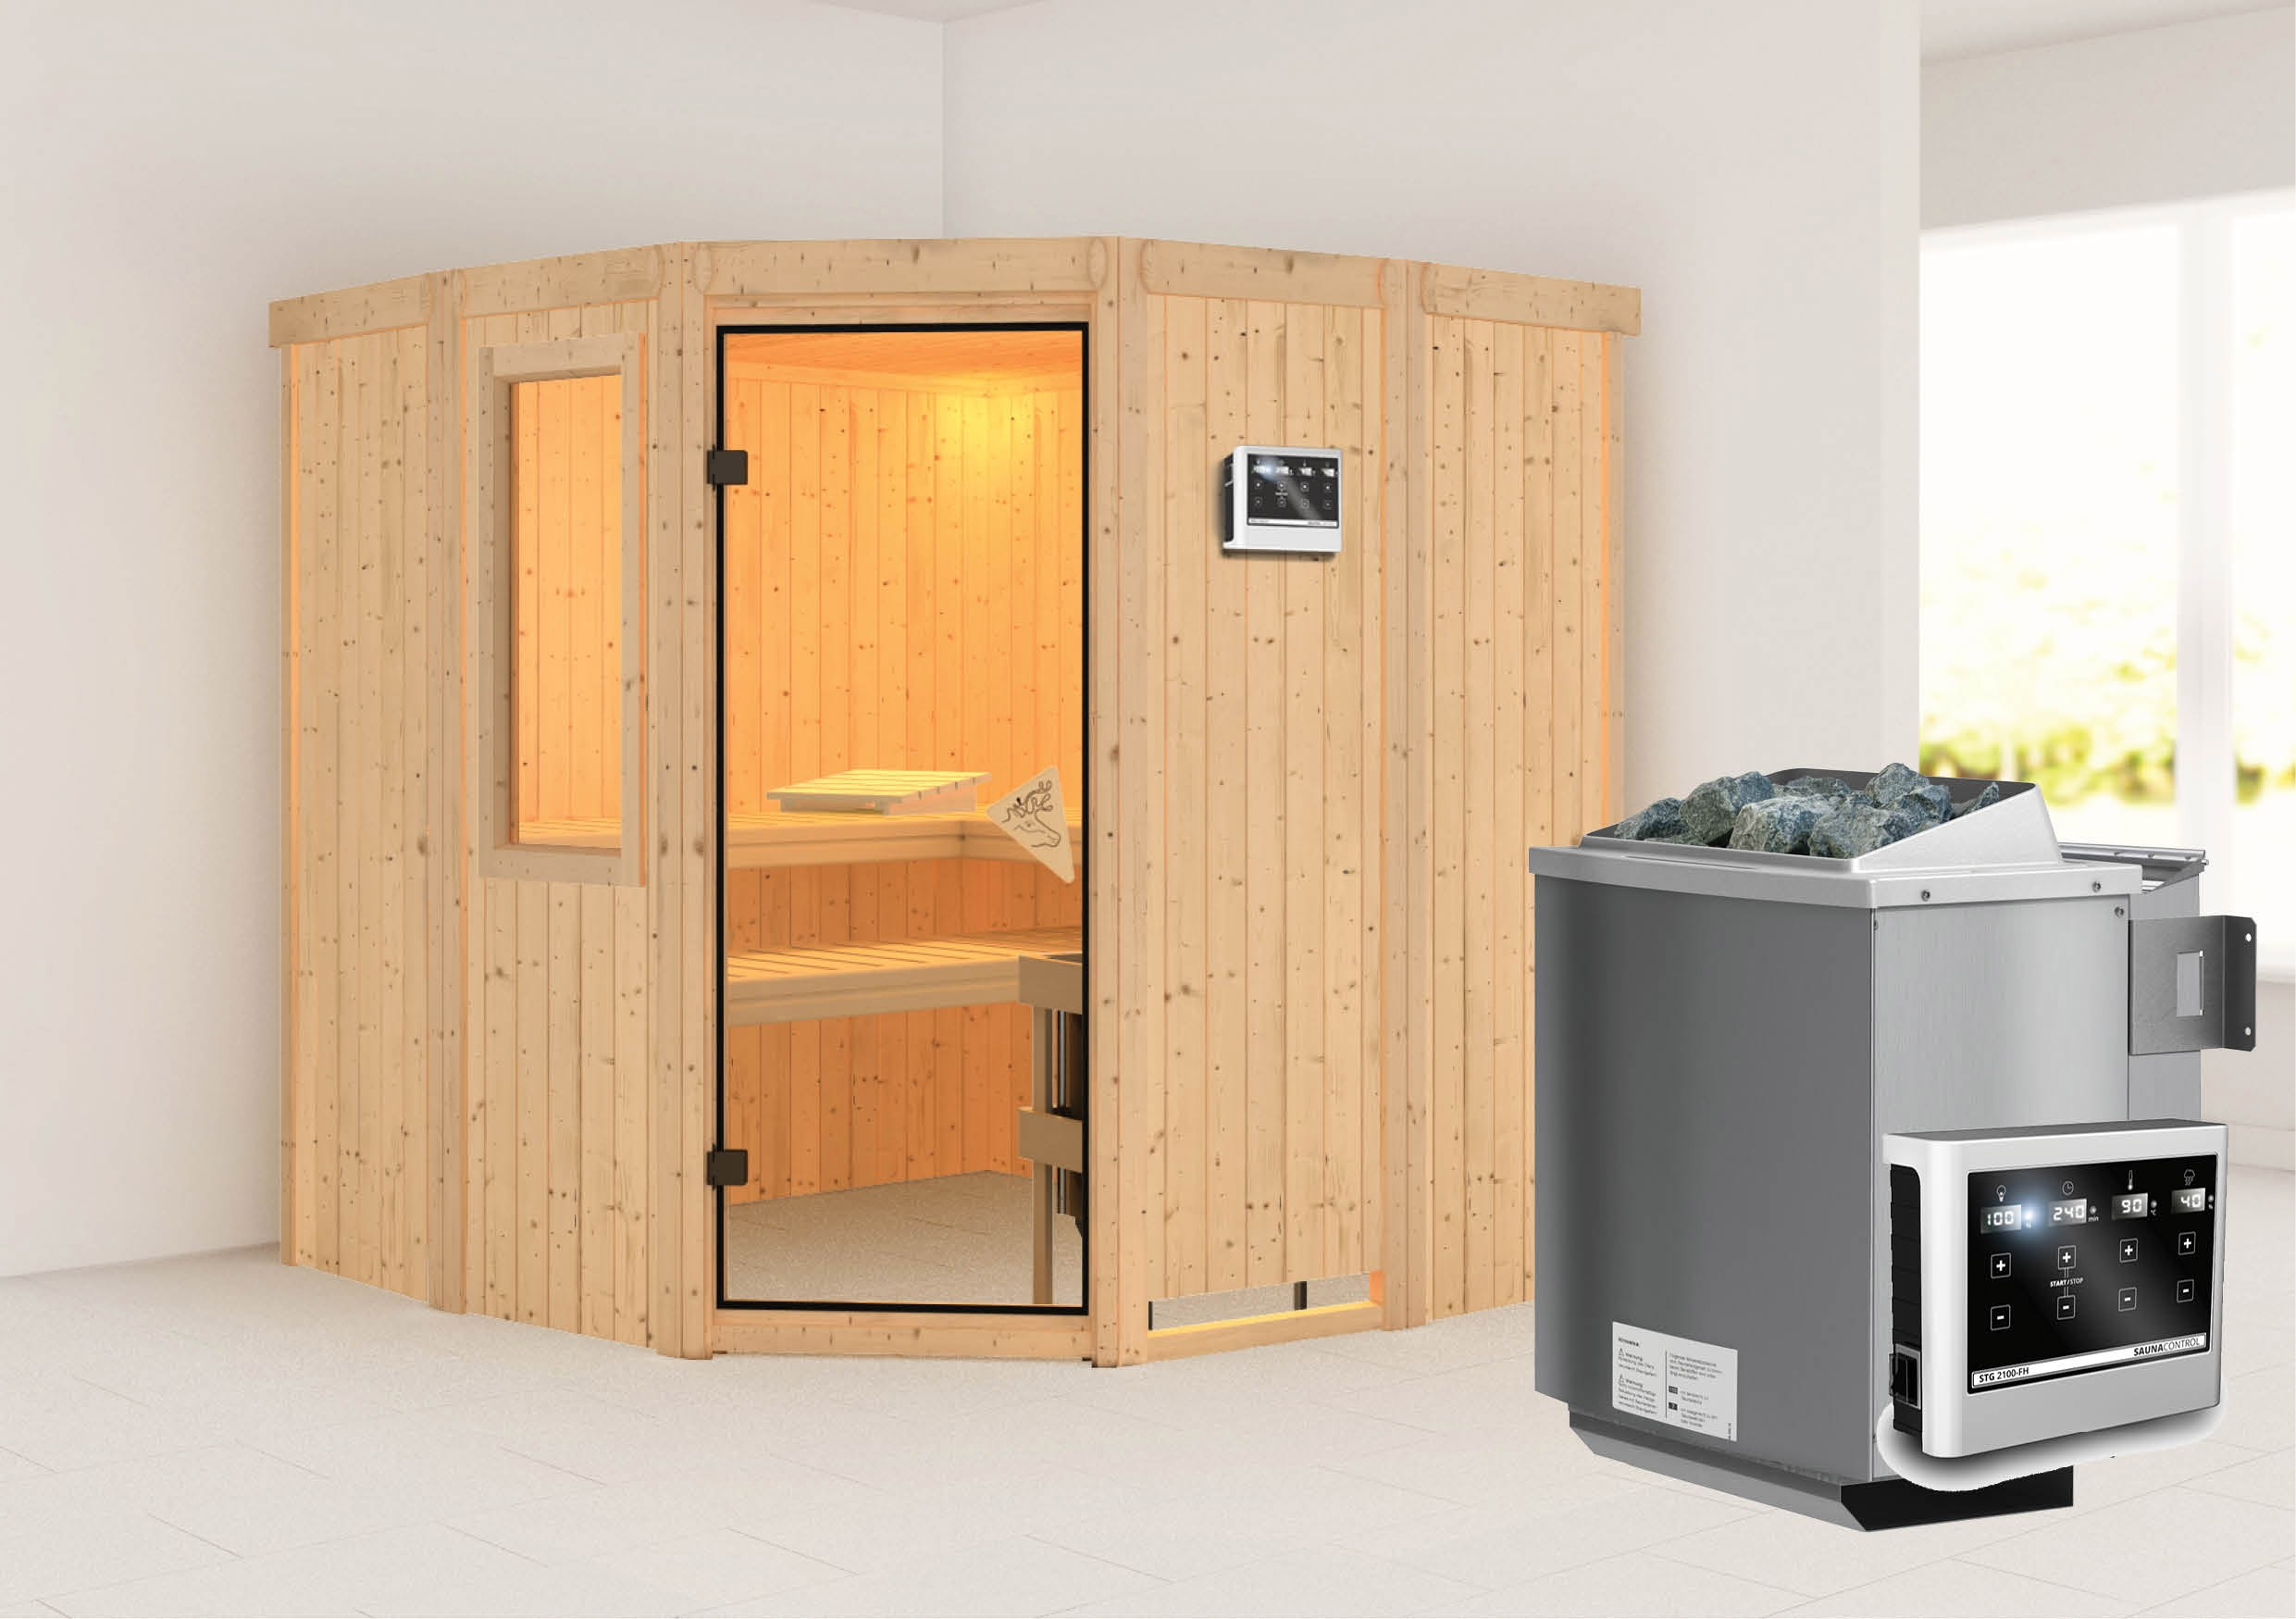 karibu sauna simara1 68mm fenster bio ofen 9kw extern classic t r bei. Black Bedroom Furniture Sets. Home Design Ideas